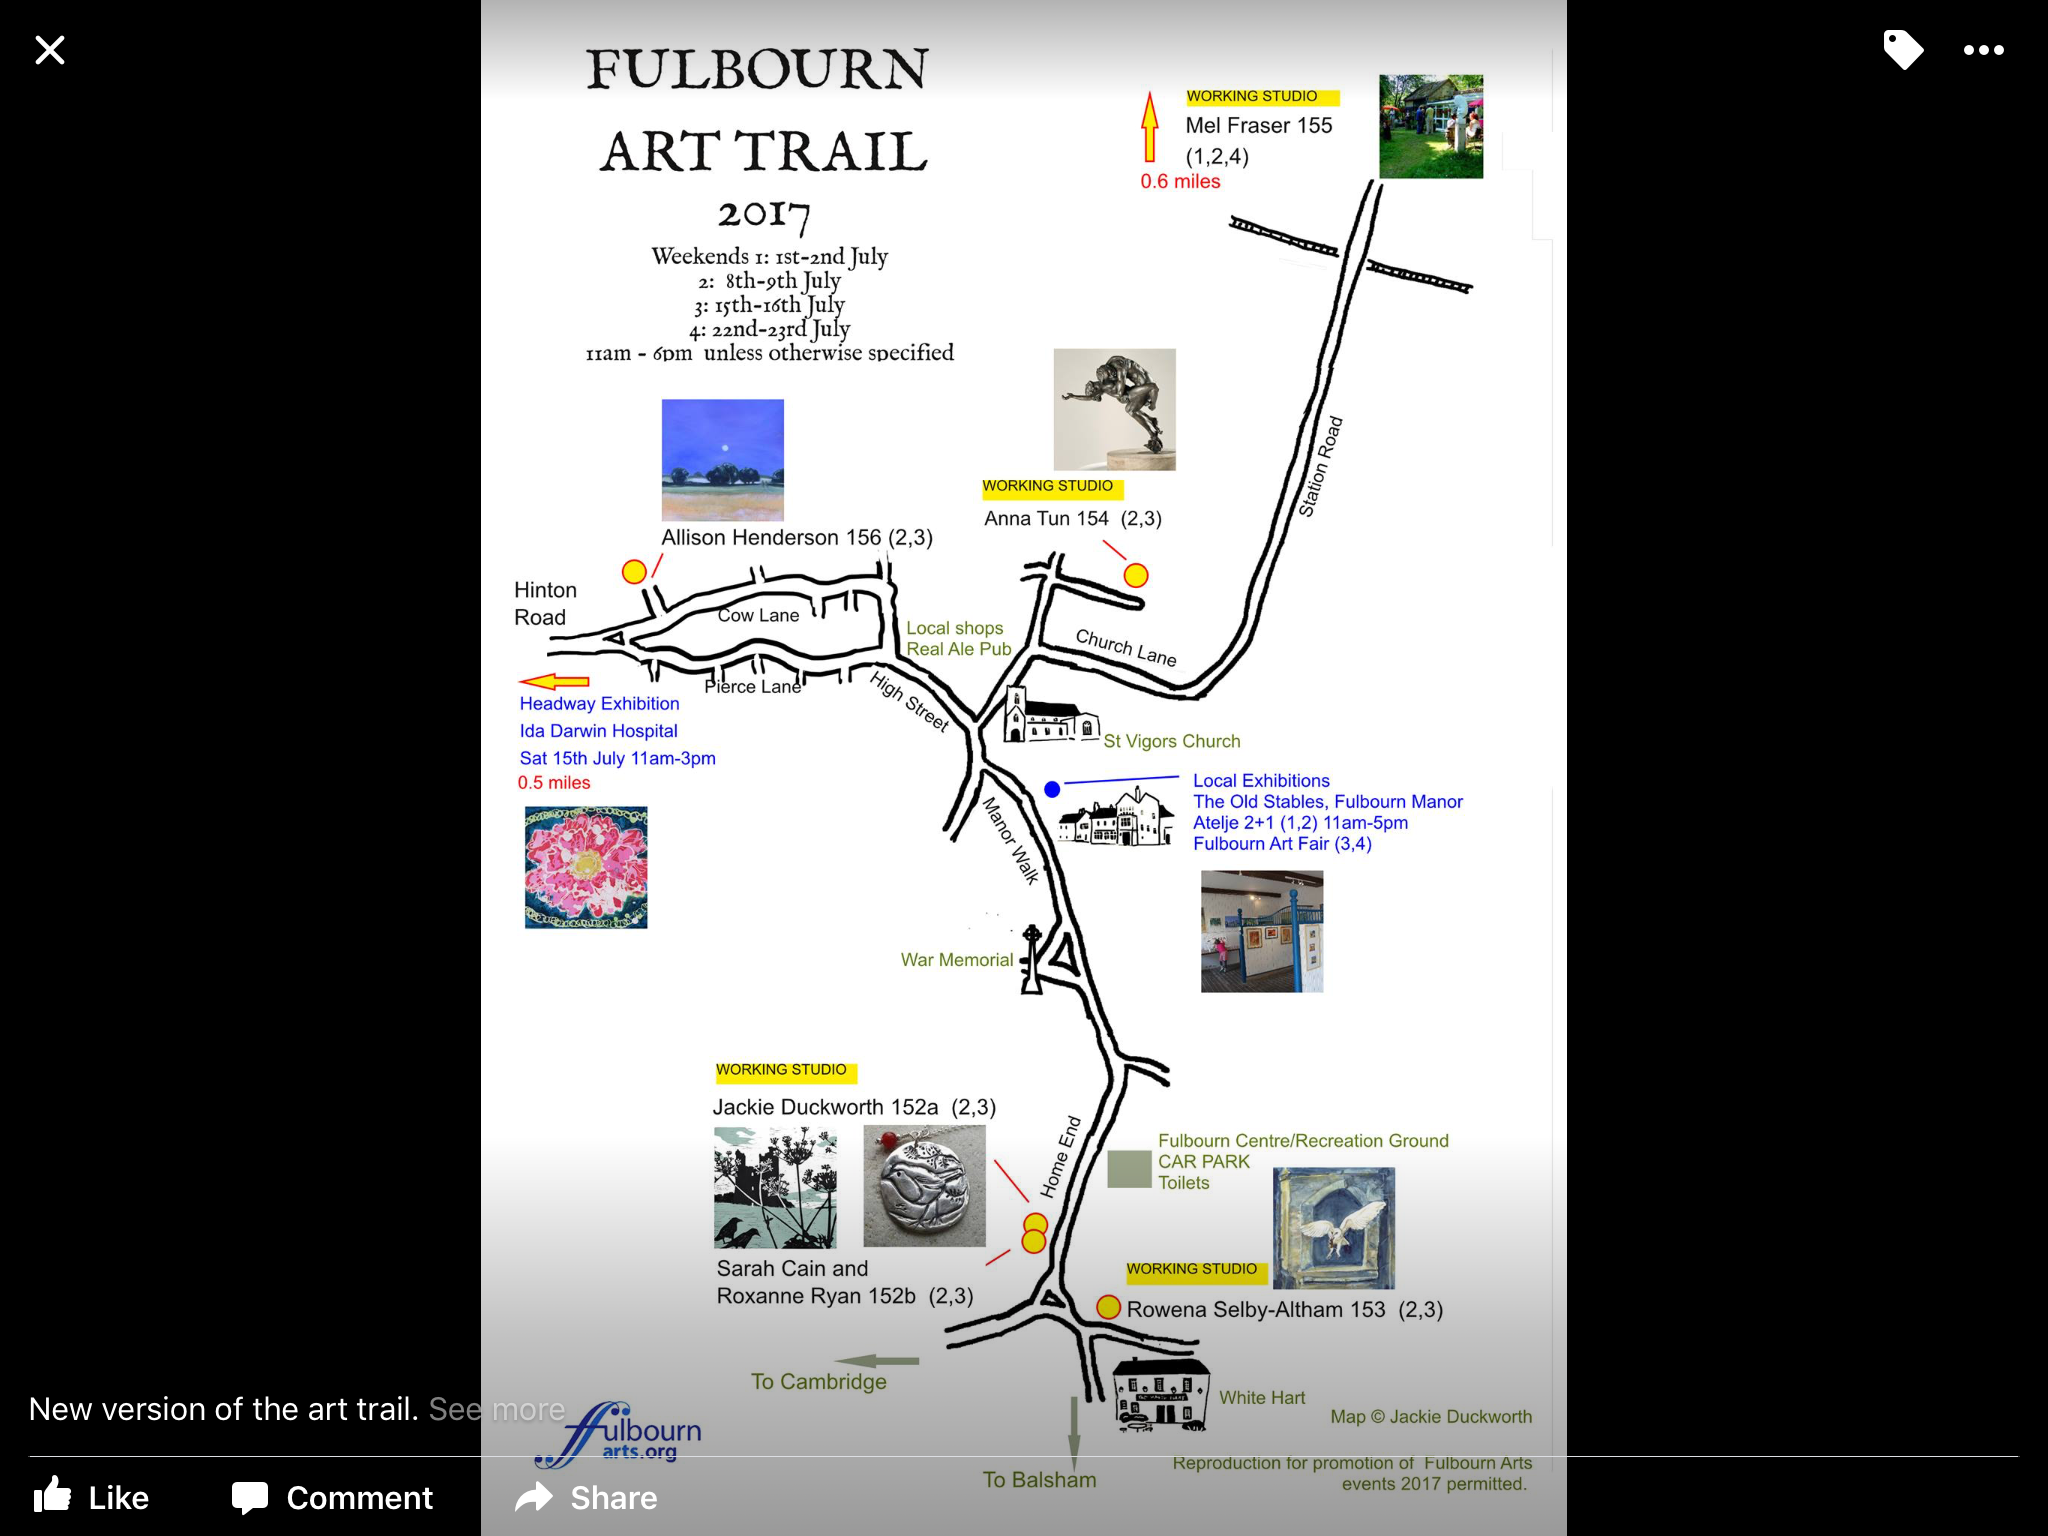 Fulbourn Art Trail